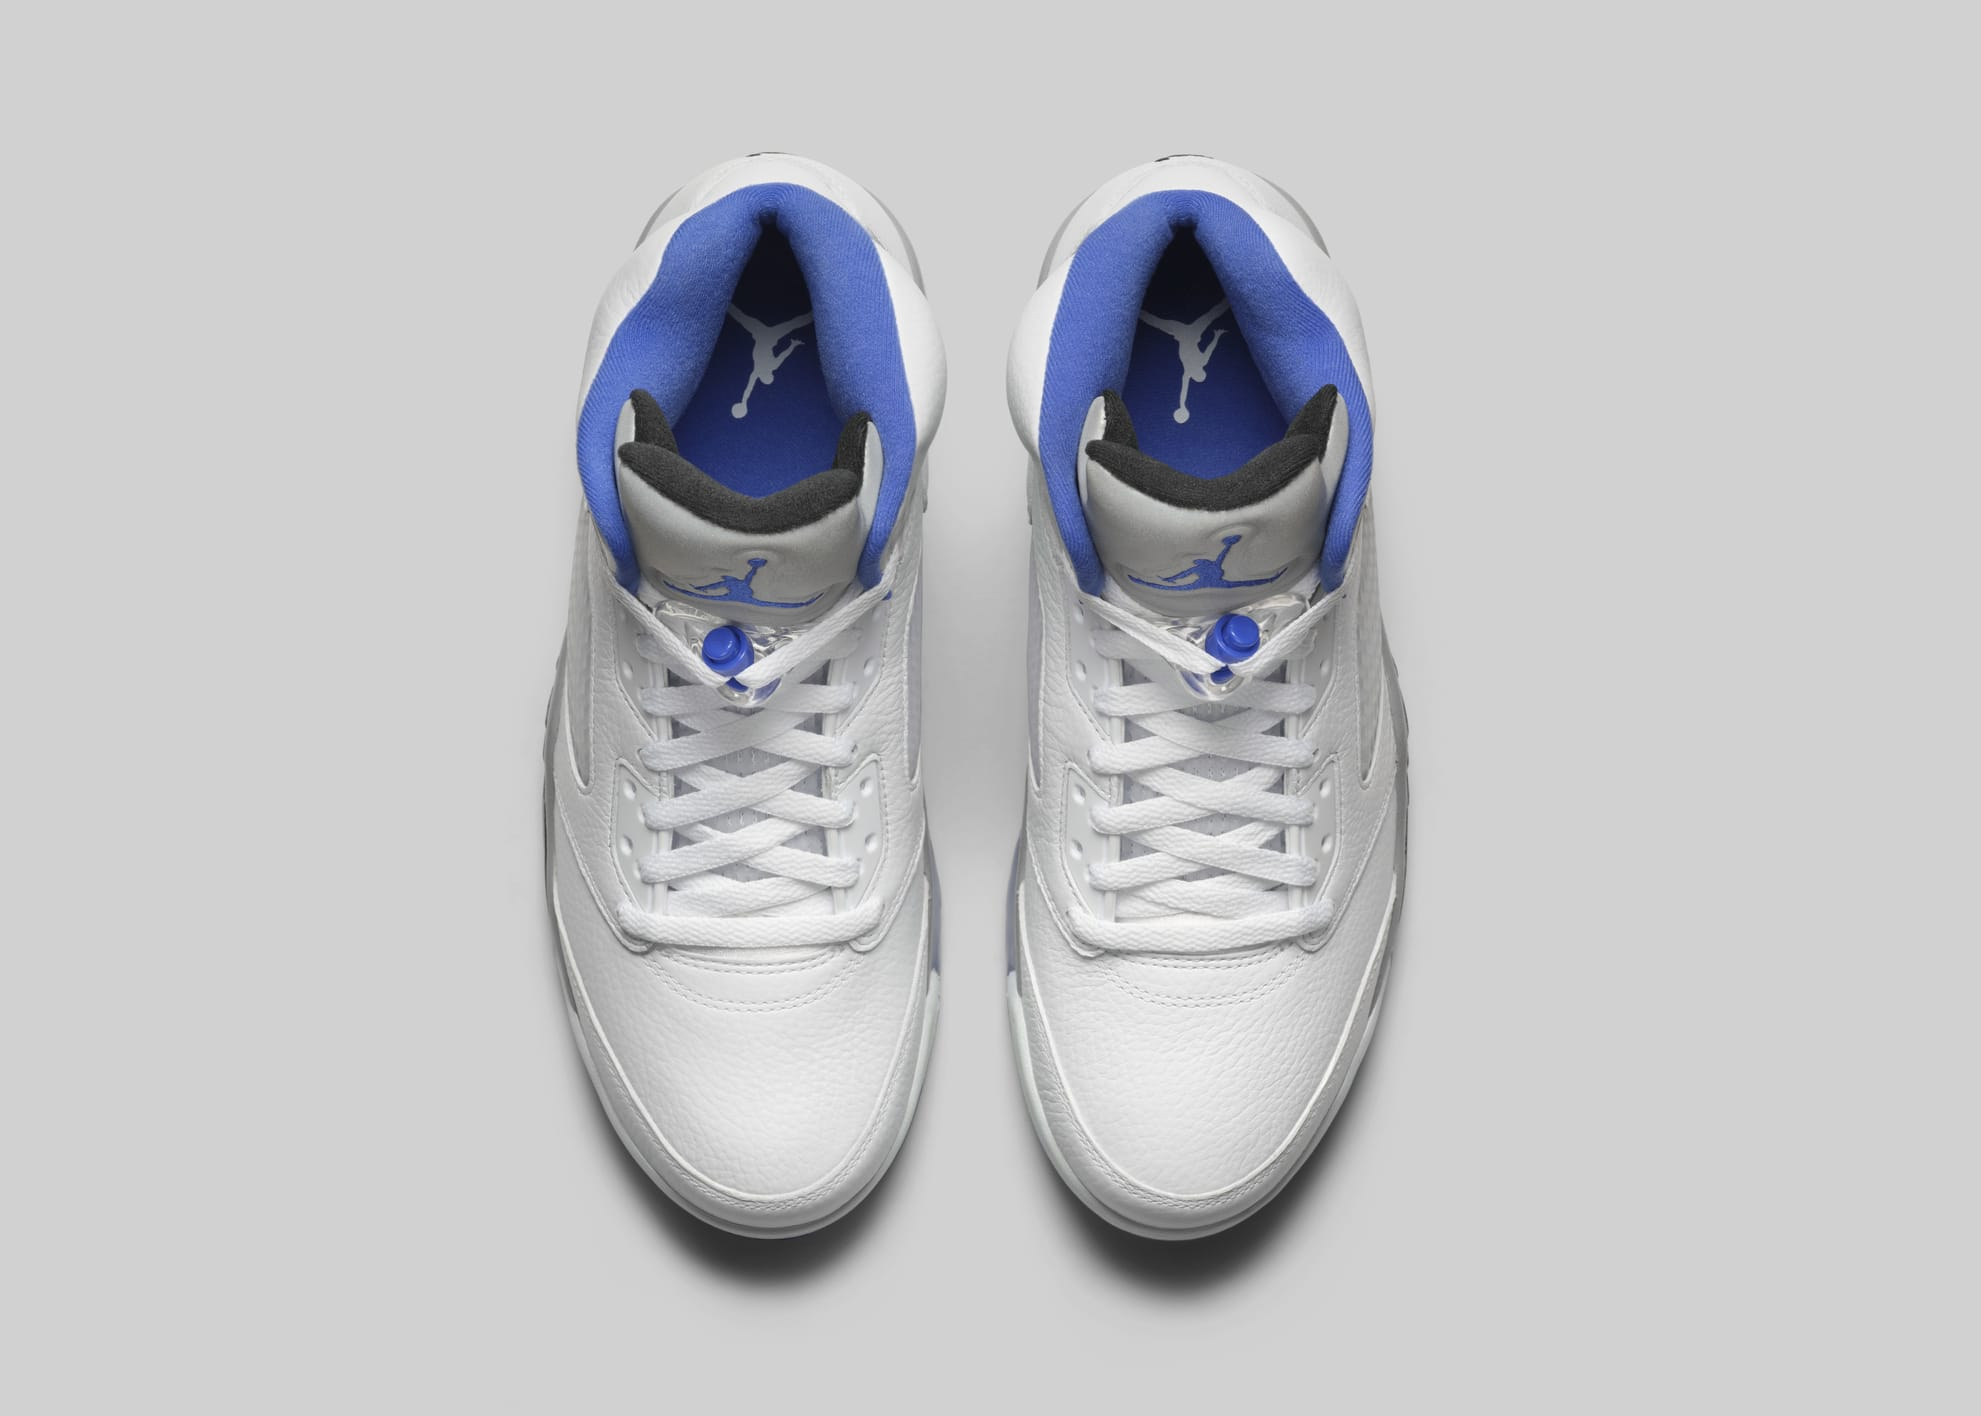 Air Jordan 5 Retro 'Hyper Royal' DD0587-140 Top